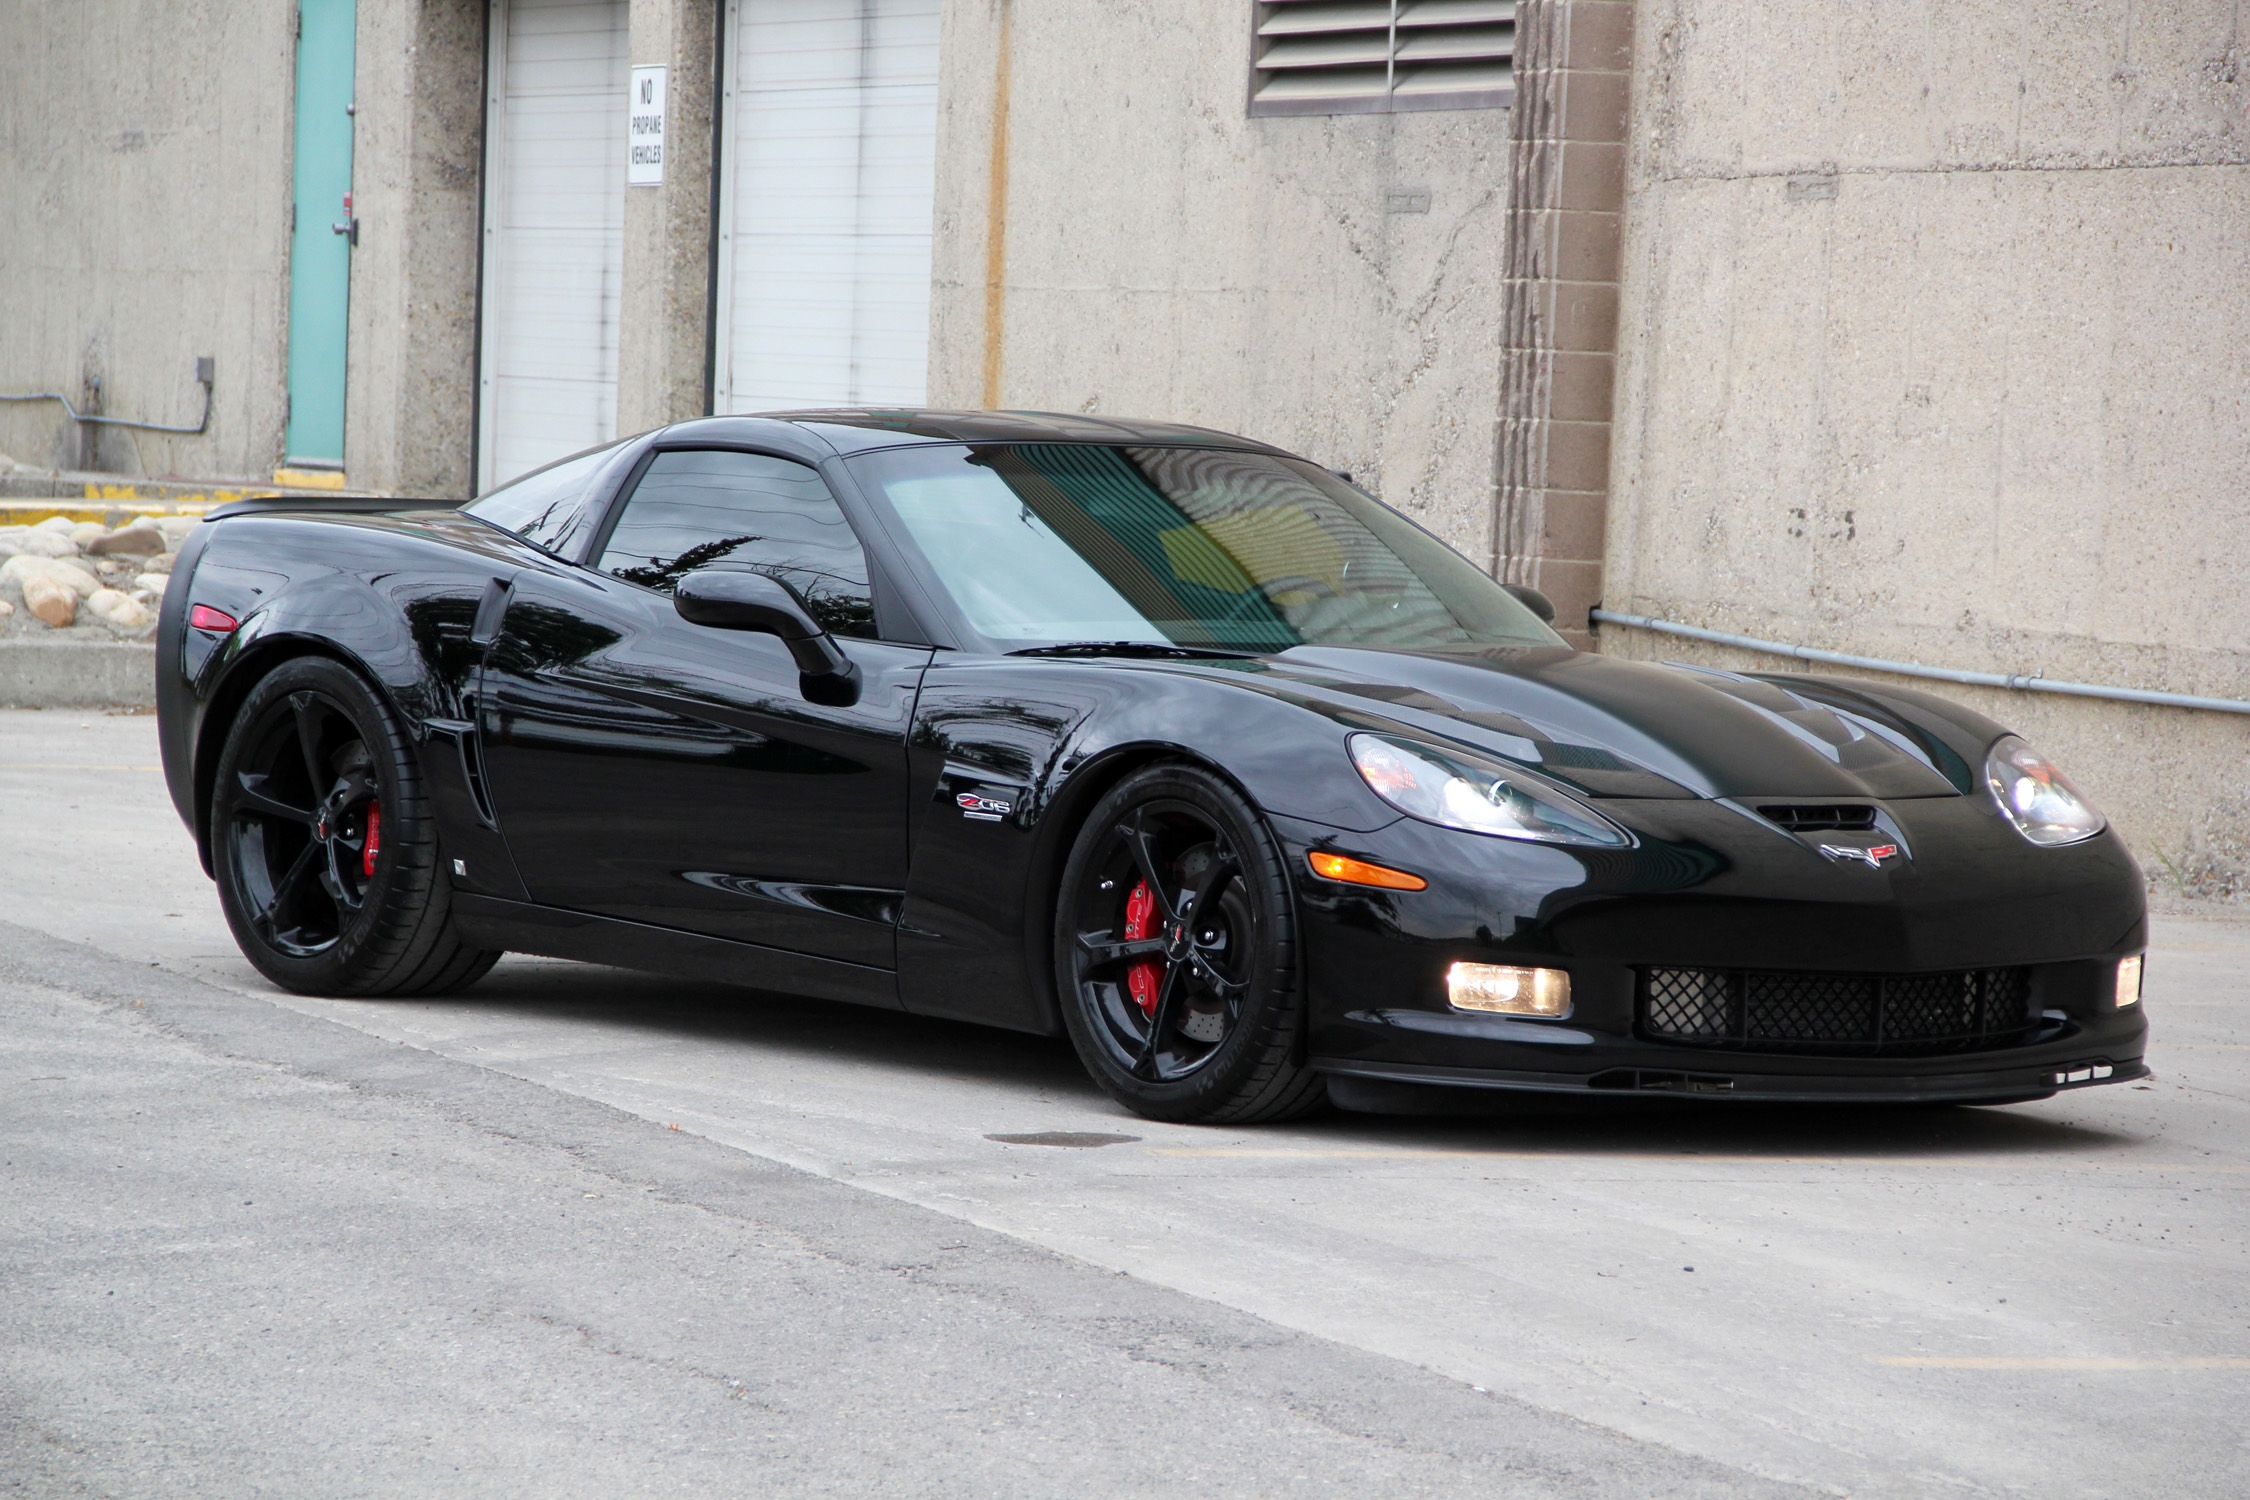 2009 Corvette Z06 Supercharged The Beast Envision